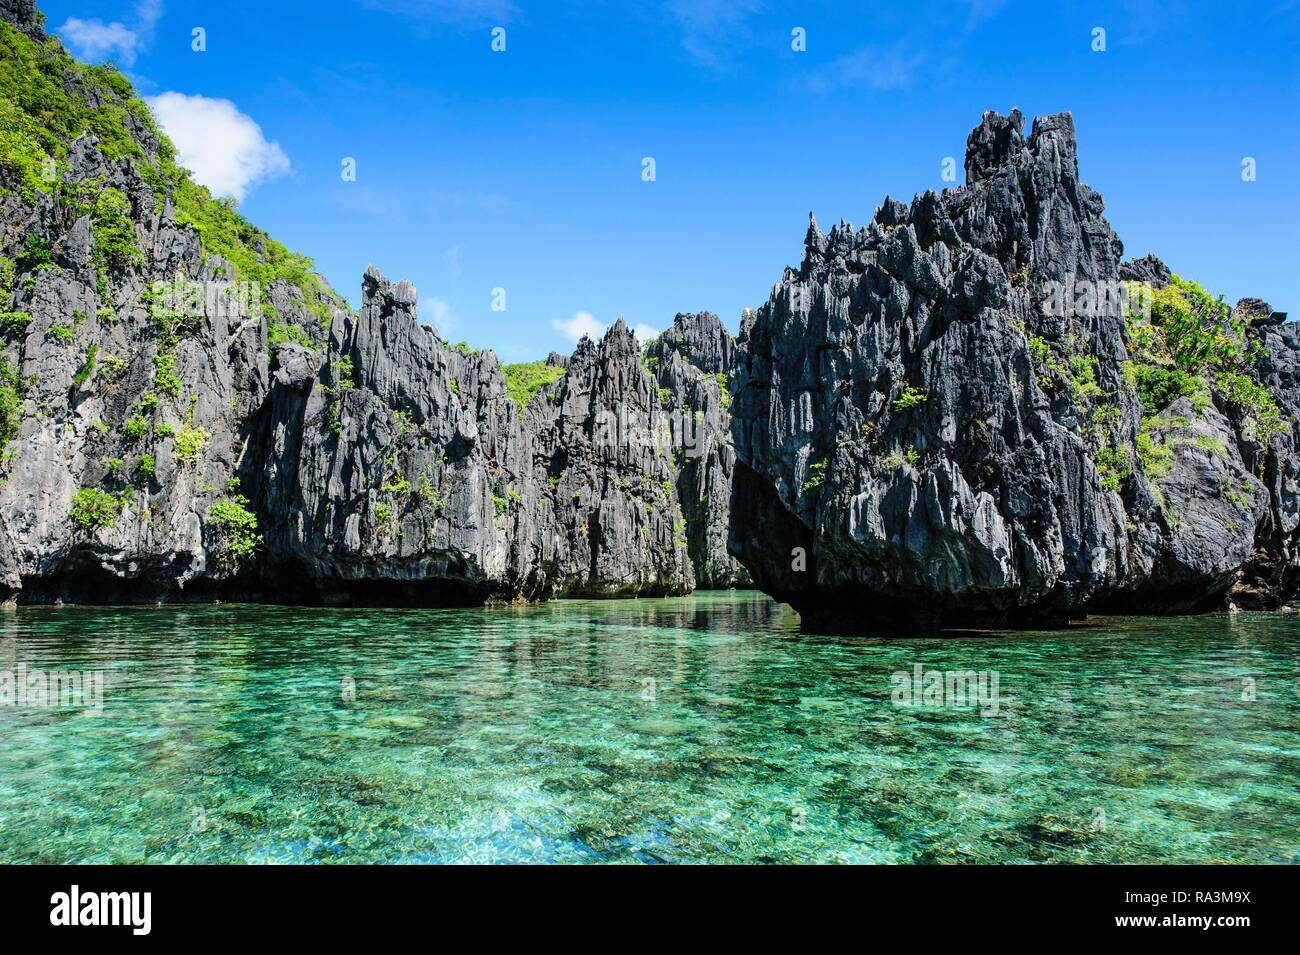 Crystal clear water with limestones, Bacuit archipelago, El Nido, Palawan, Philippines - Stock Image